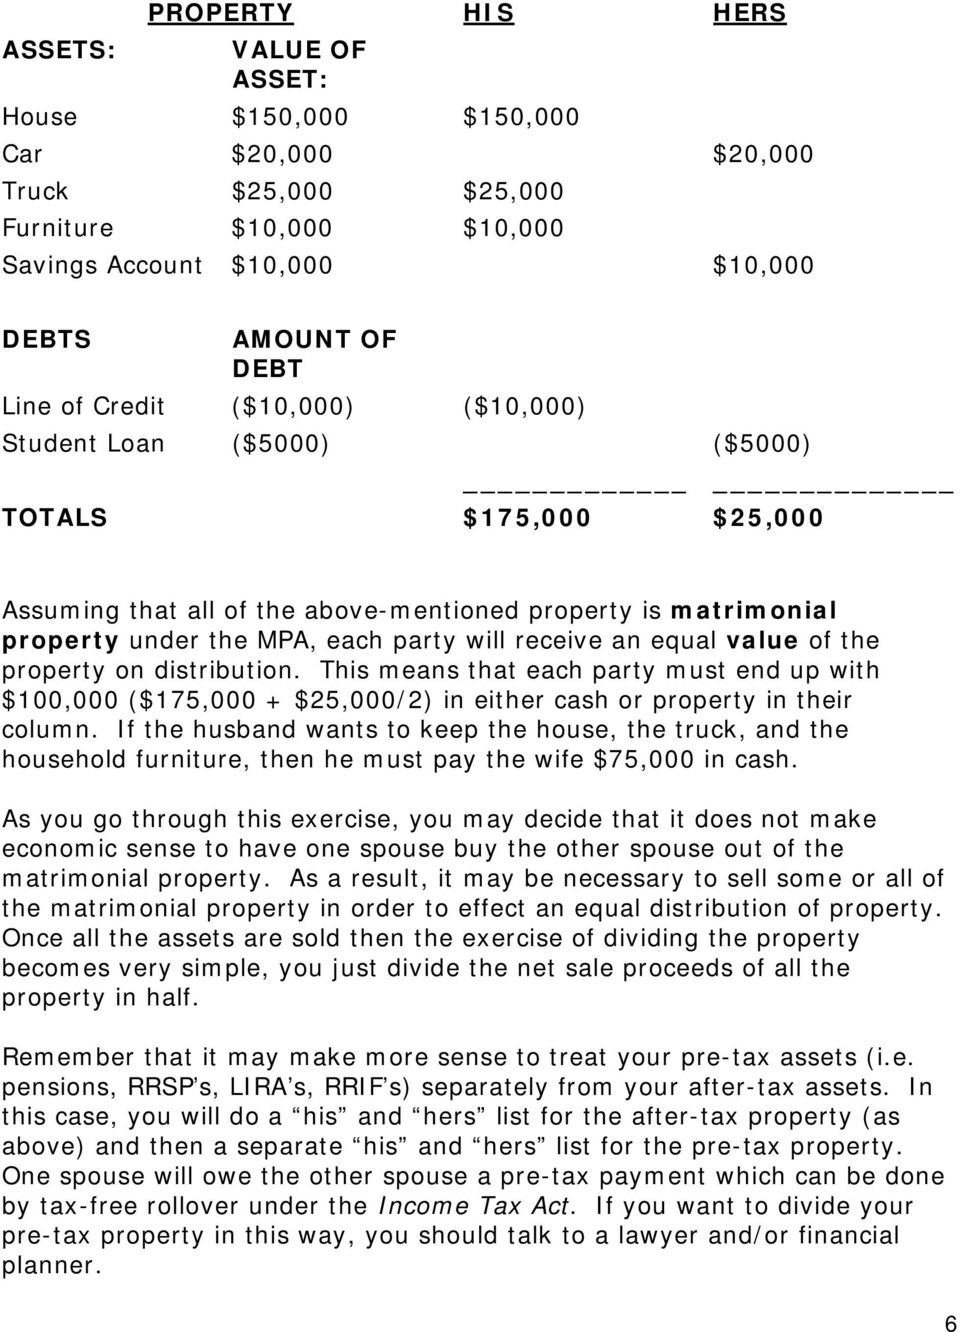 equal value of the property on distribution. This means that each party must end up with $100,000 ($175,000 + $25,000/2) in either cash or property in their column.